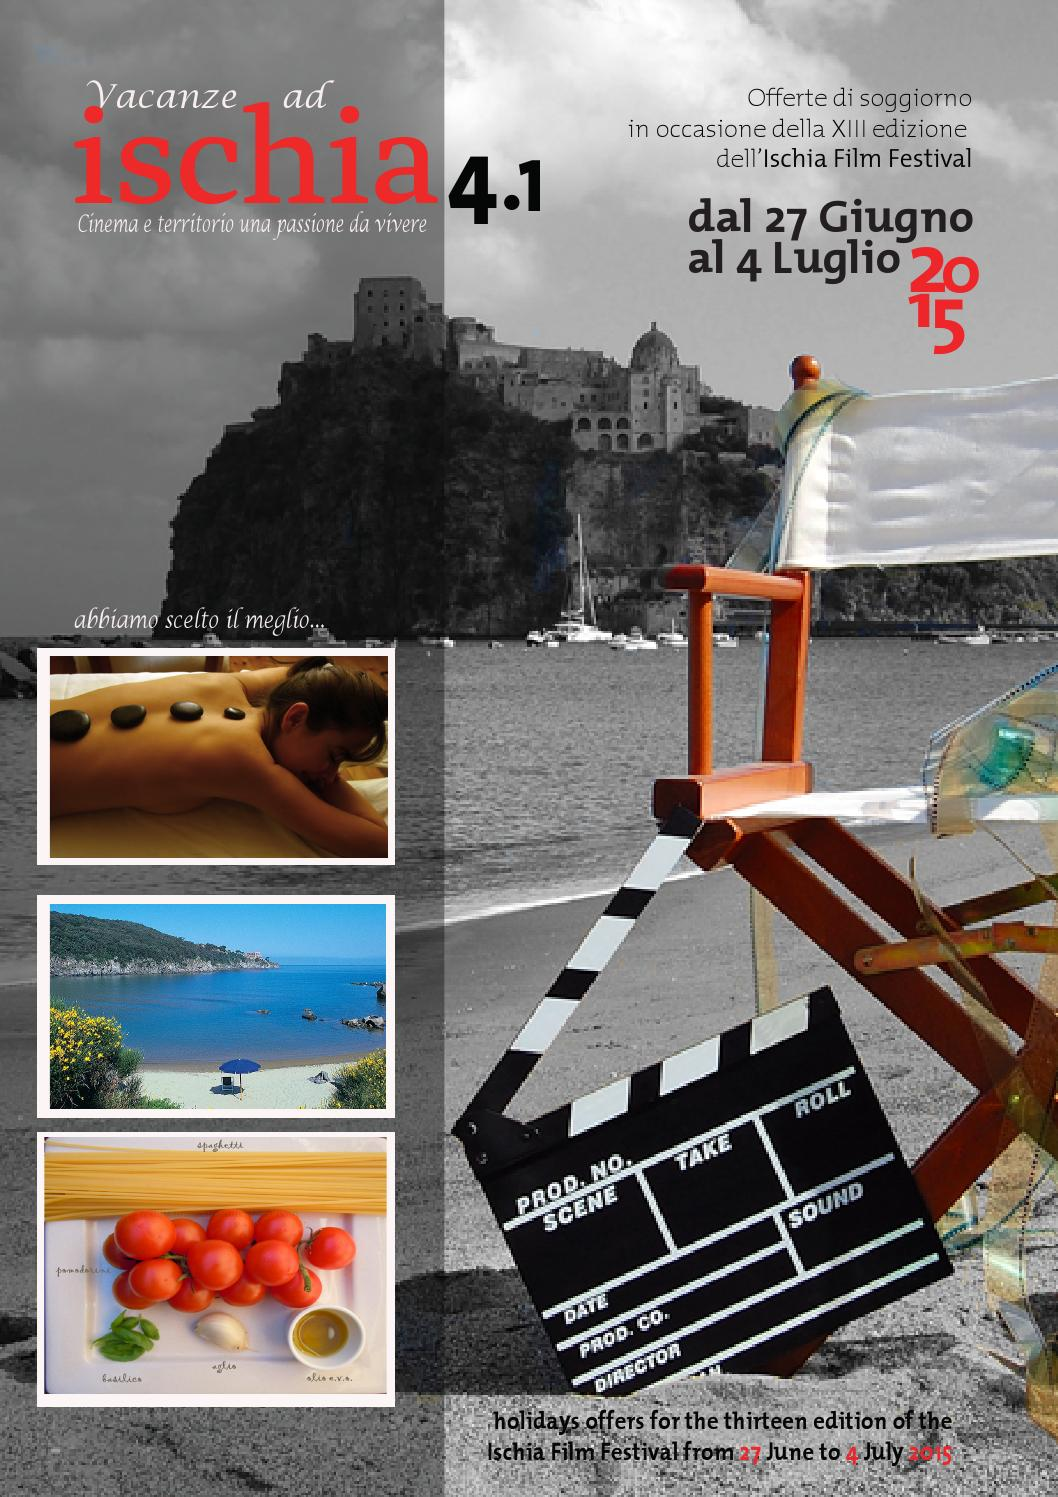 Vacanze ad Ischia 2015 by Ass. Cult. Art Movie e Music - issuu